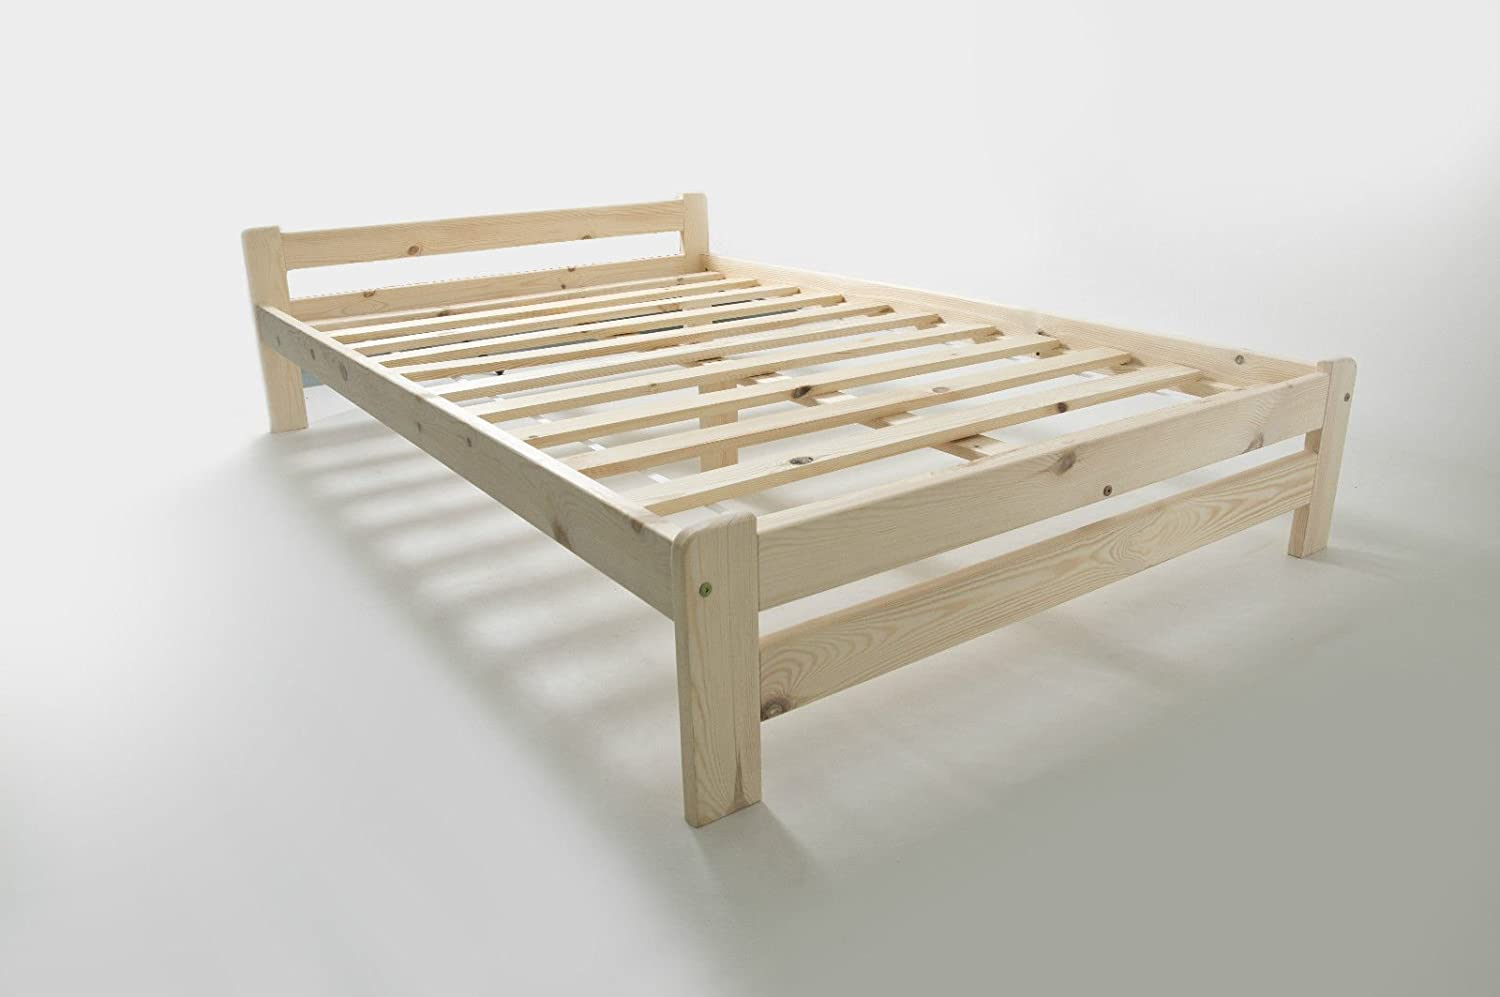 Wooden bed frames double - Double Bed 4ft Small Double Solid Pine Wood Scandinavian Style Amazon Co Uk Kitchen Home